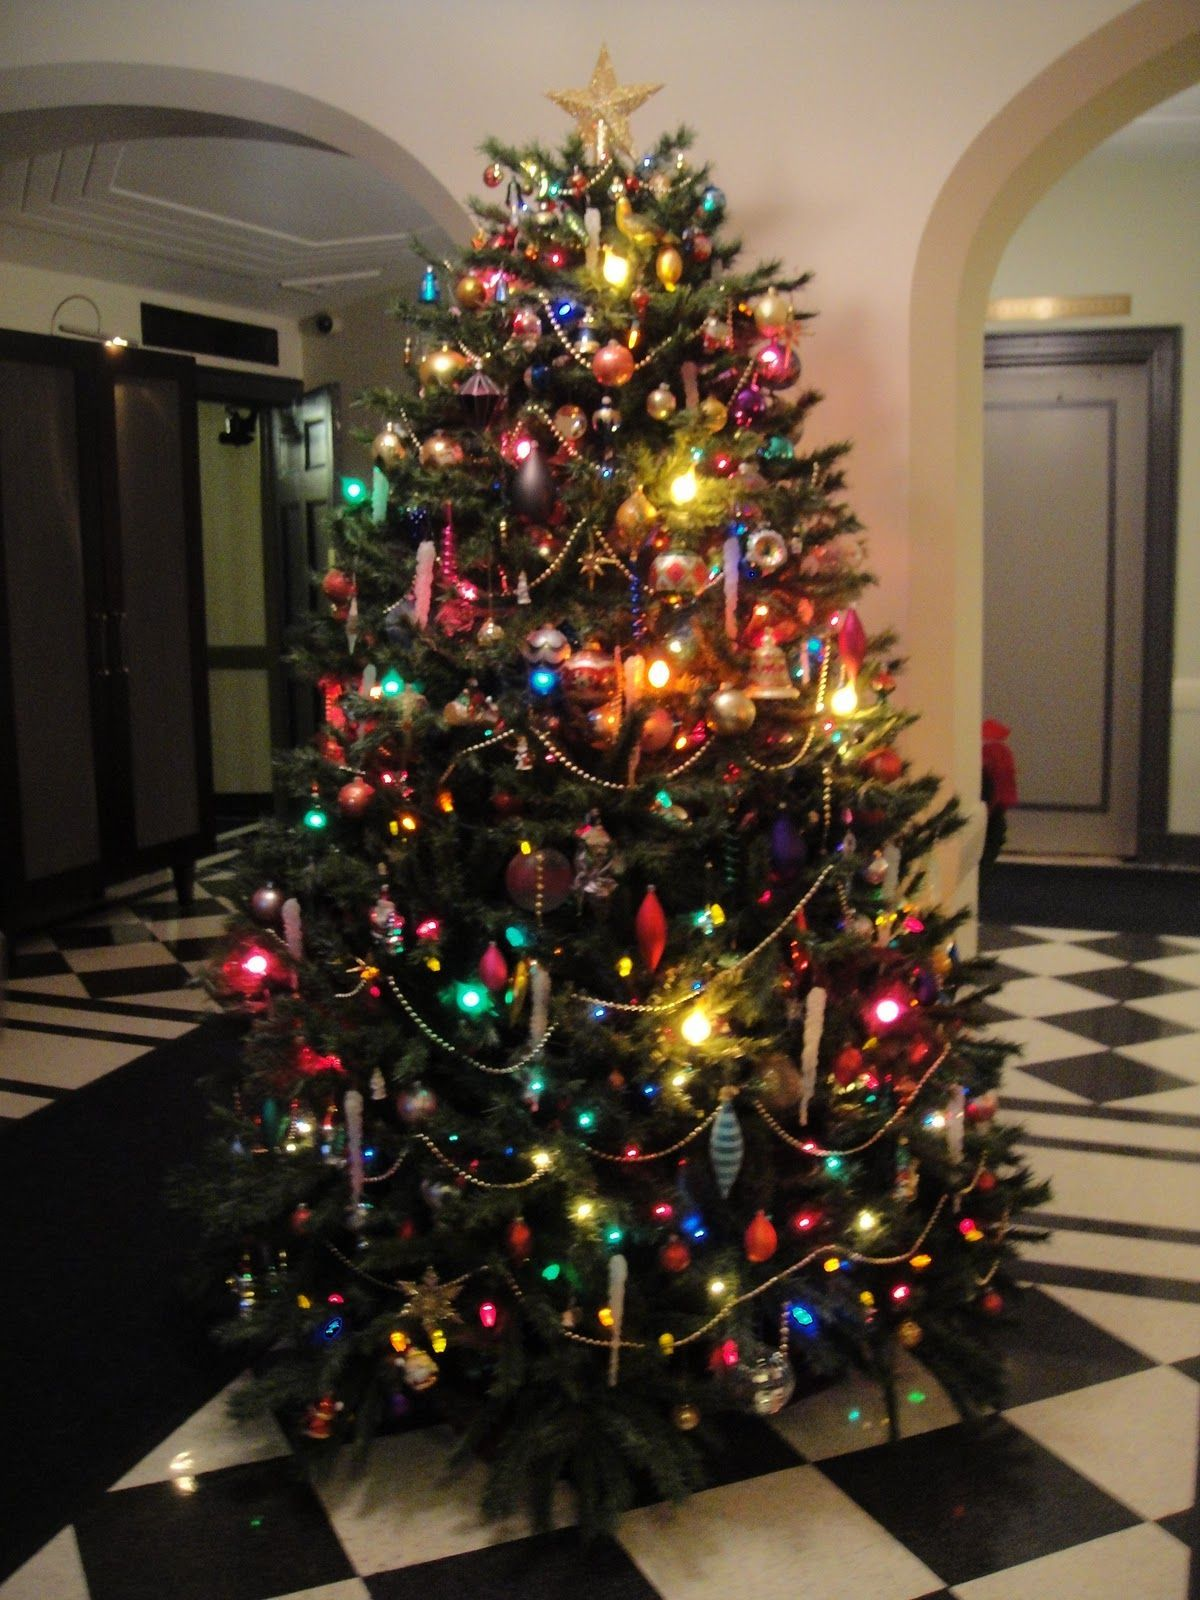 Christmas Tree Lights Colored Christmas Cozy Winterweather In 2020 Christmas Tree With Coloured Lights Colored Christmas Lights Colorful Christmas Tree